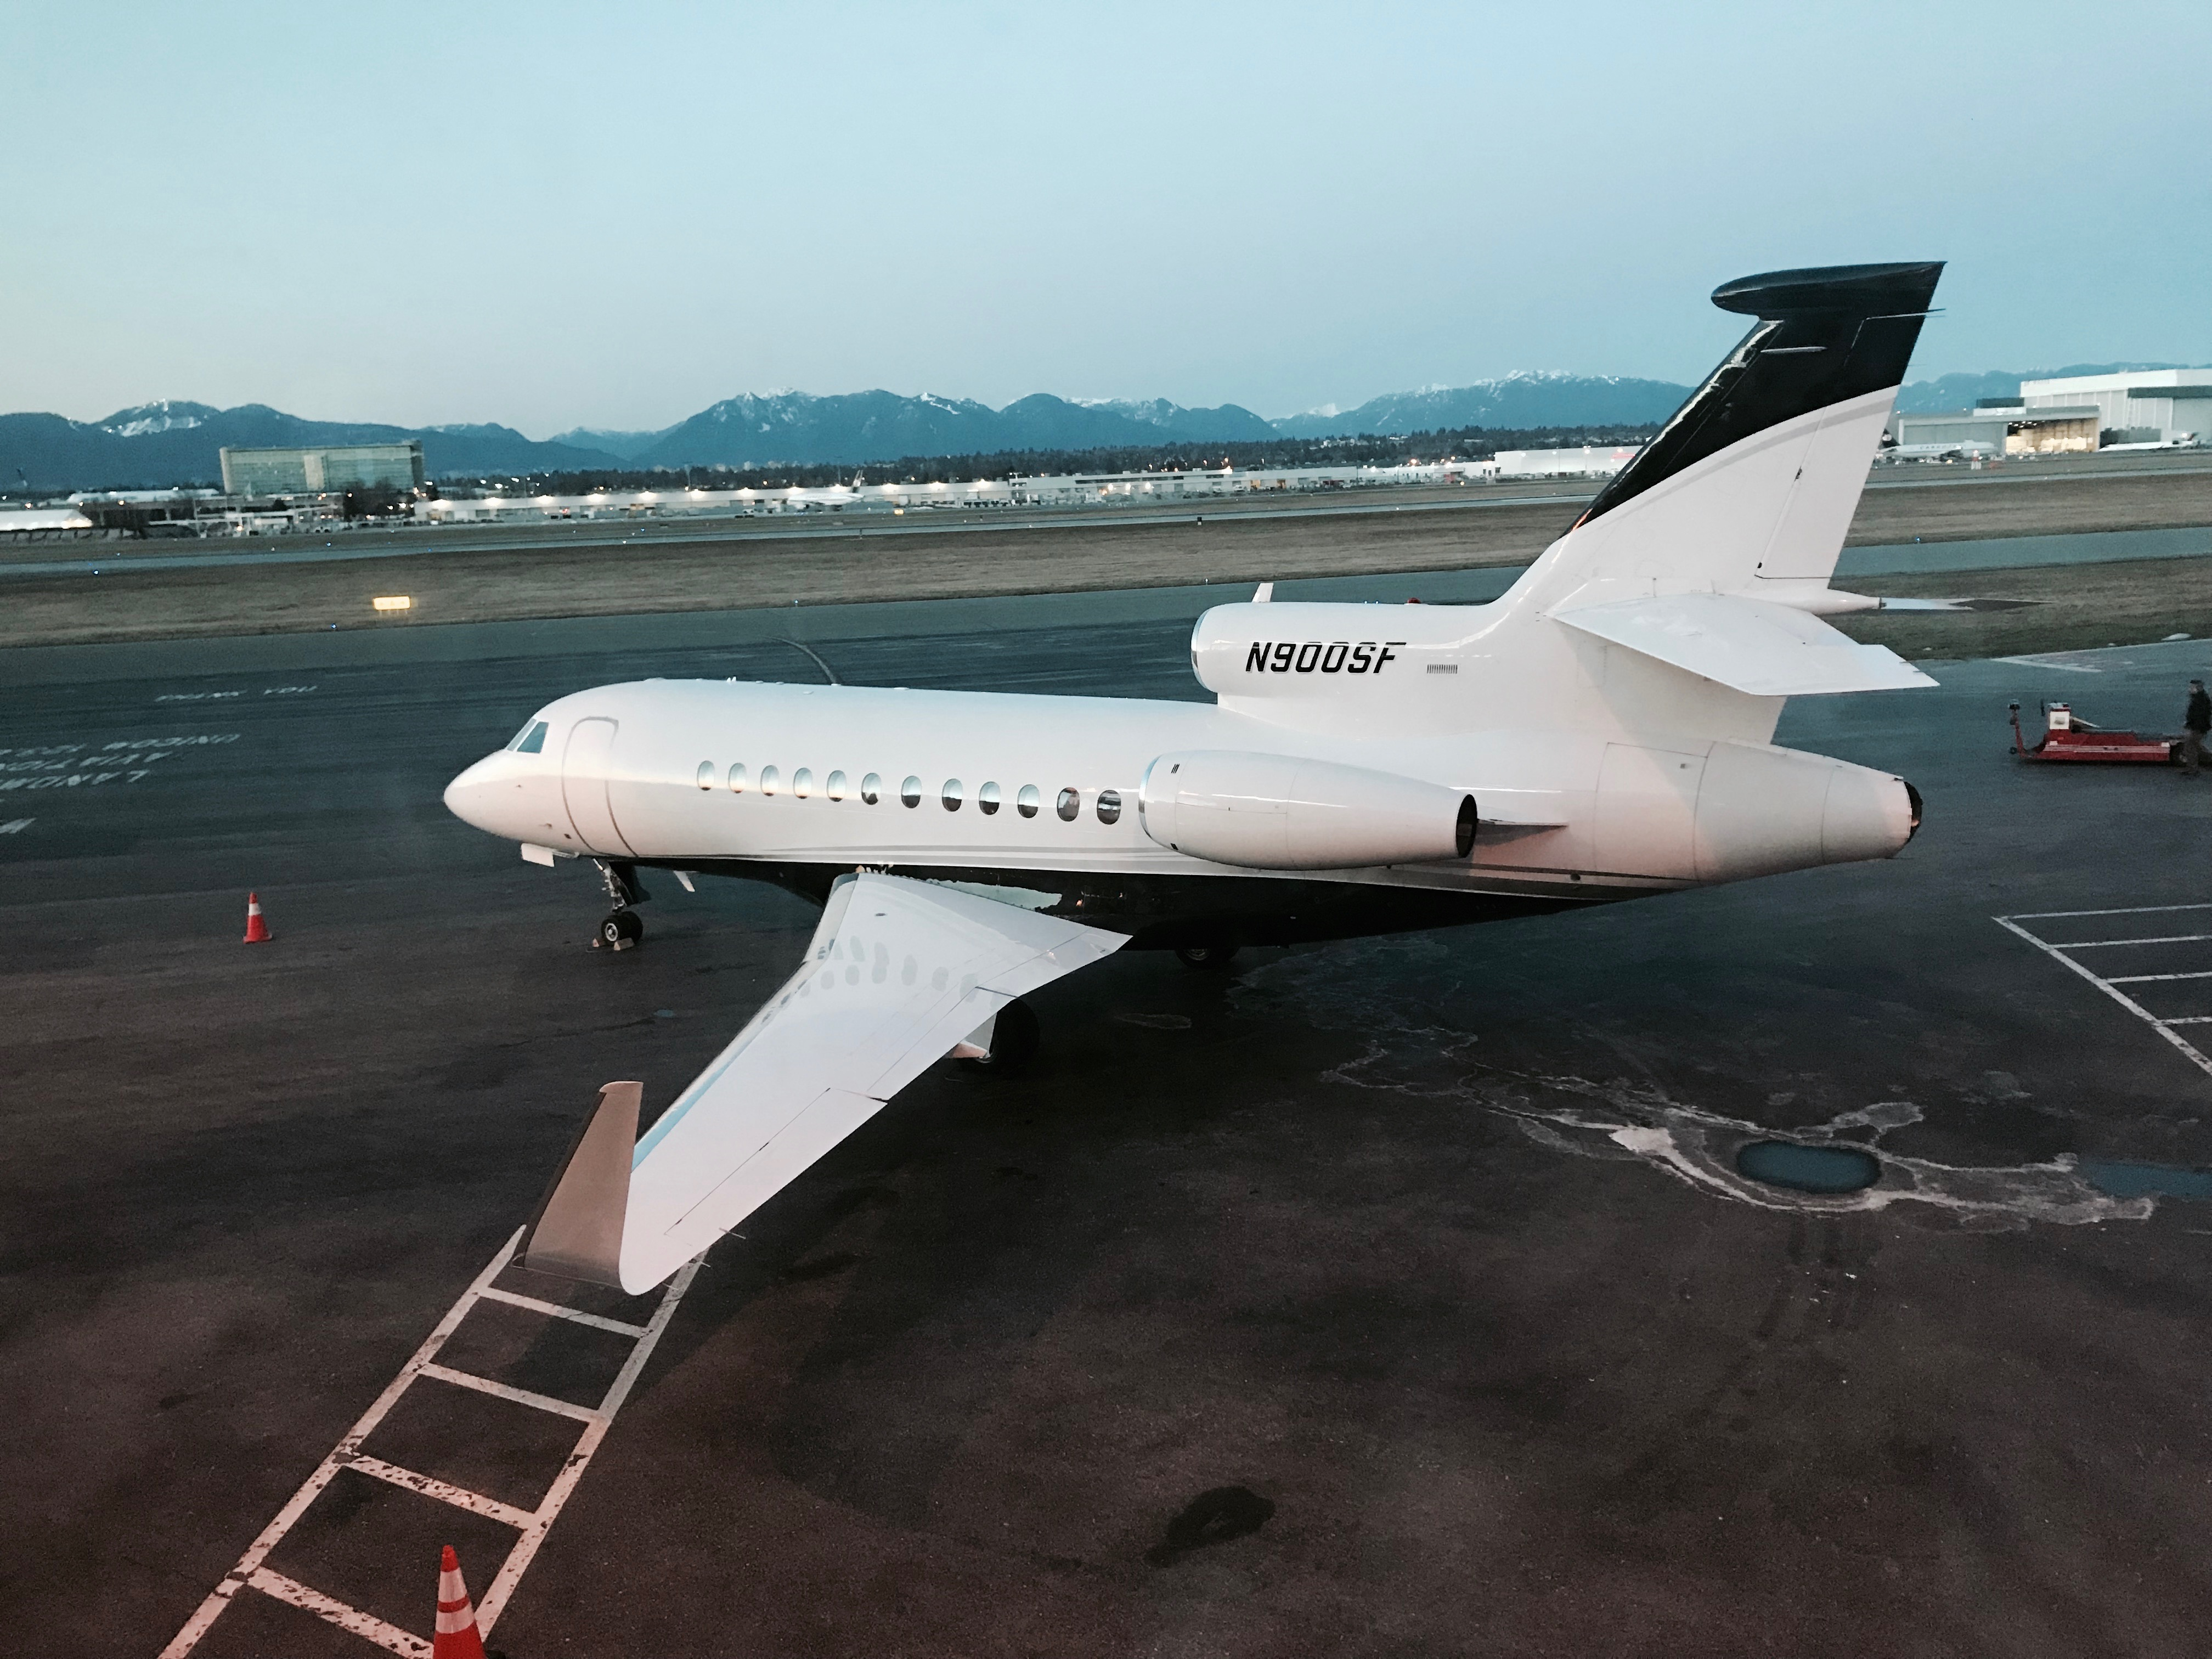 Aircraft Listing - Falcon 900B listed for sale